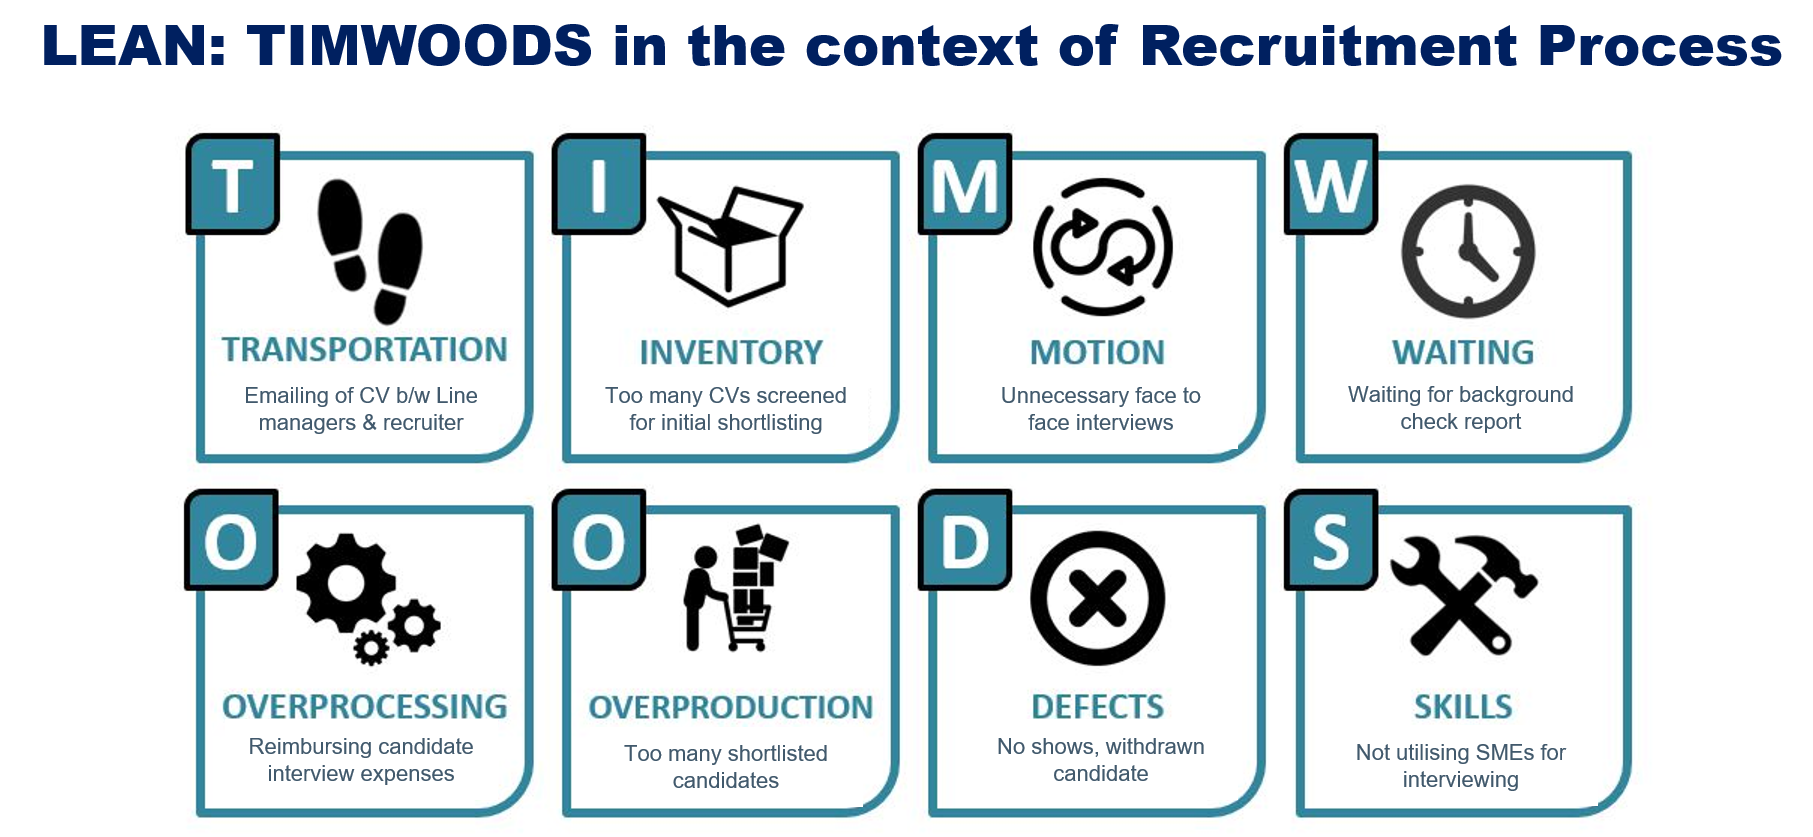 8 wastes of LEAN recruitment process